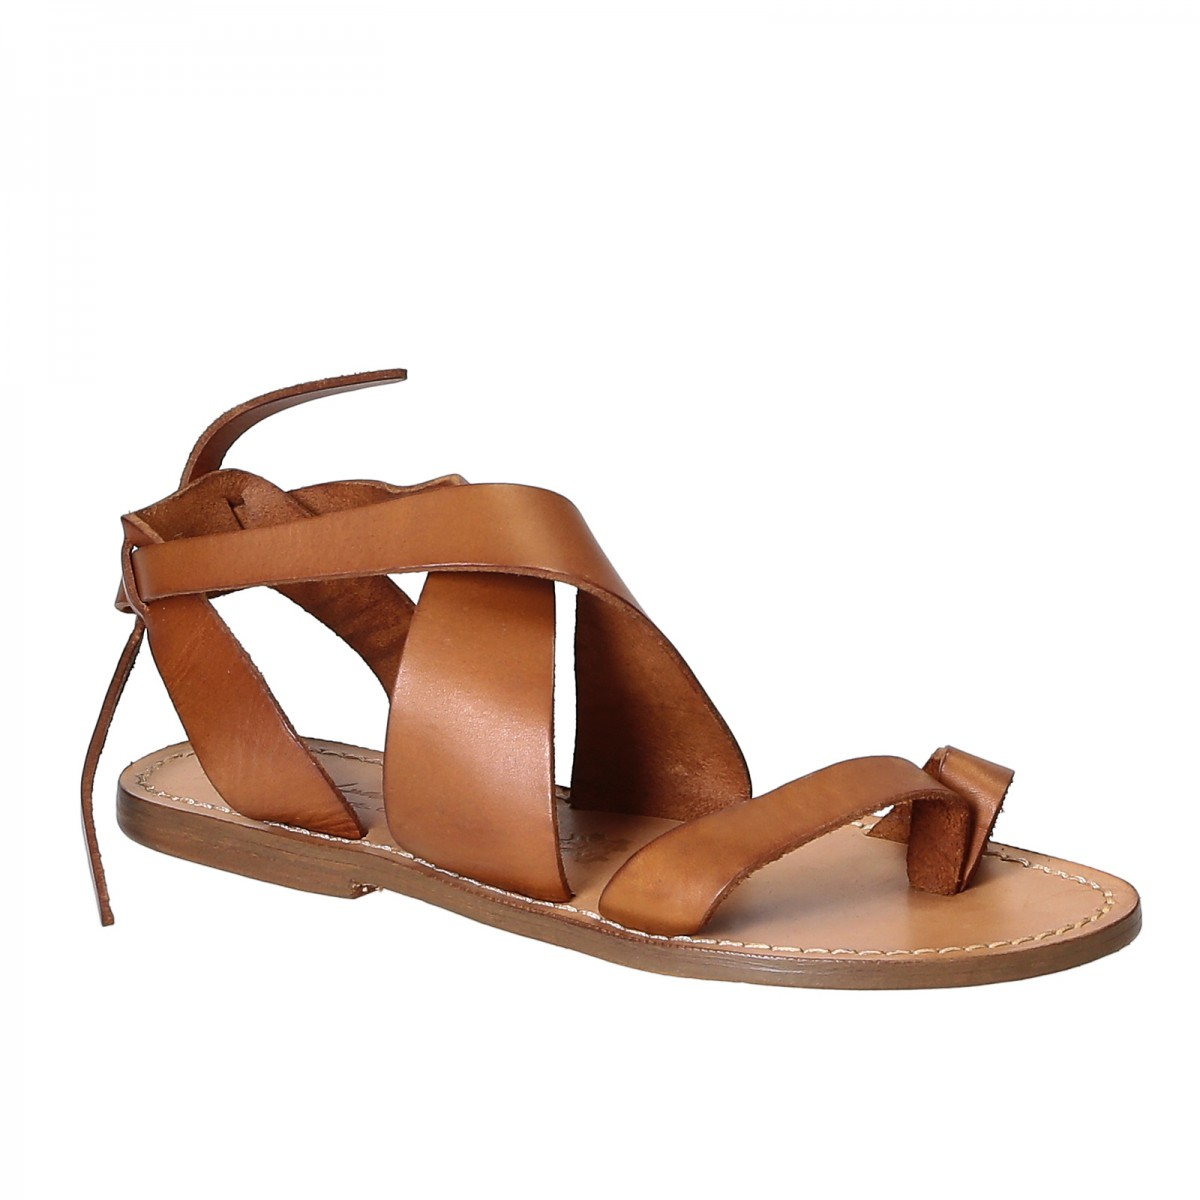 eeb1d39af89 Women sandals in tan Leather handmade in Italy. Loading zoom